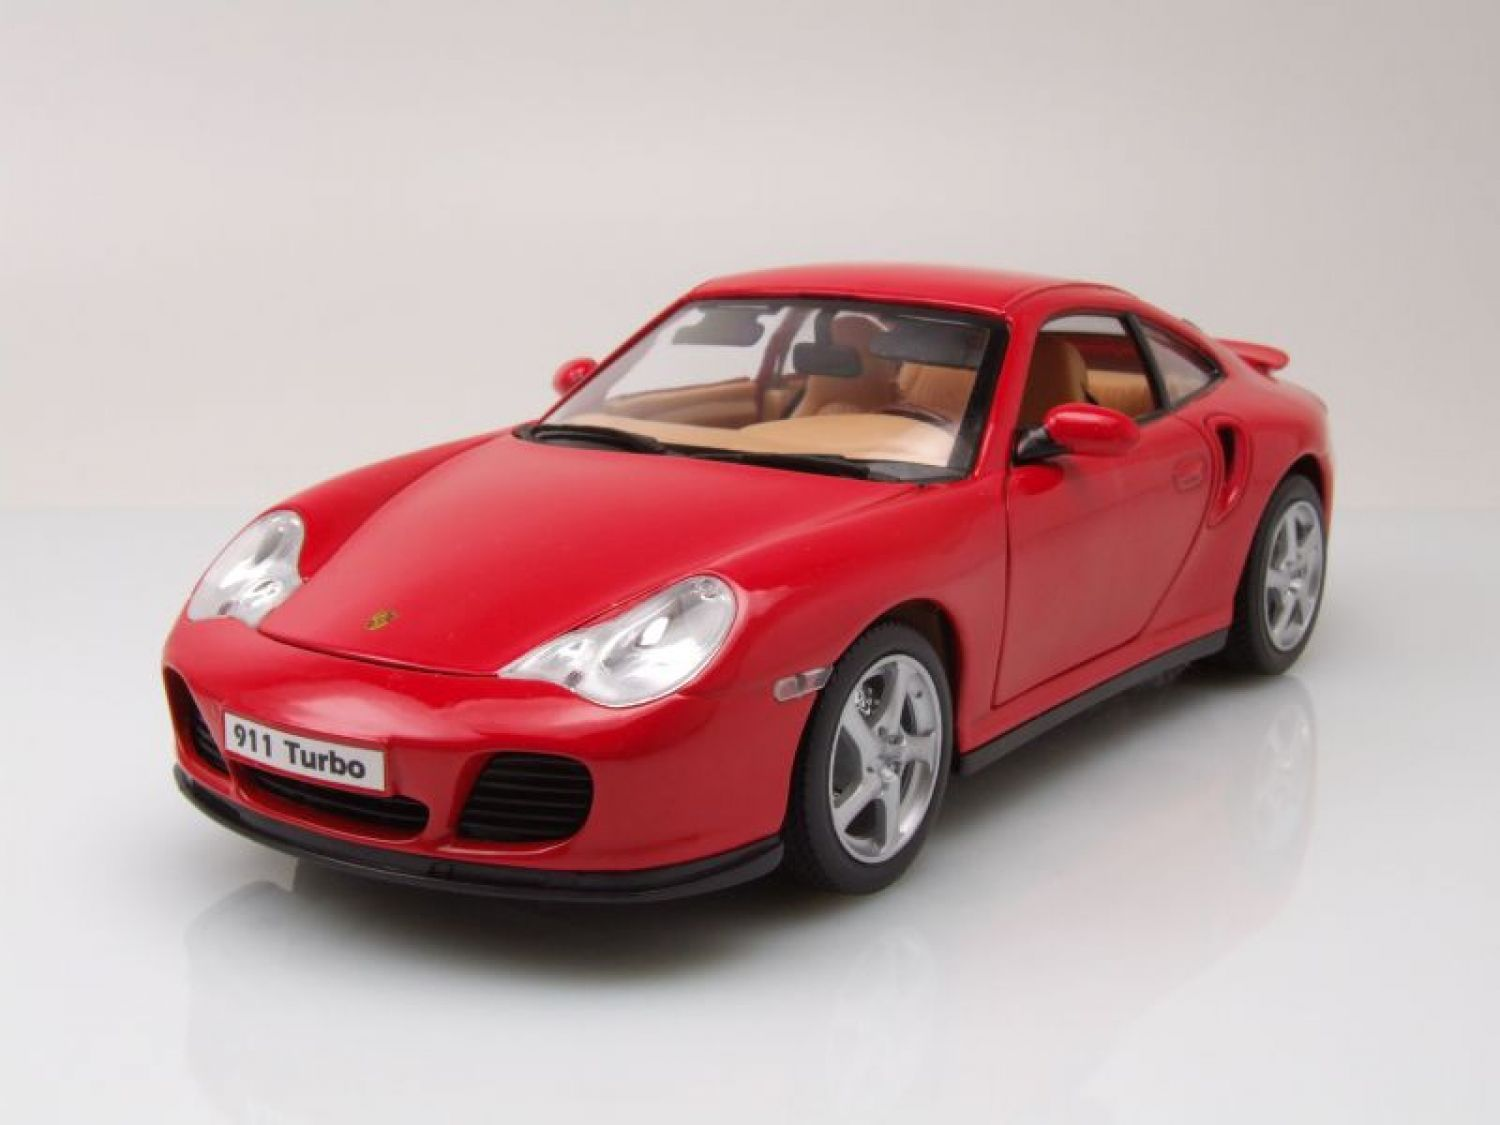 porsche 911 996 turbo rot modellauto 1 18 welly ebay. Black Bedroom Furniture Sets. Home Design Ideas